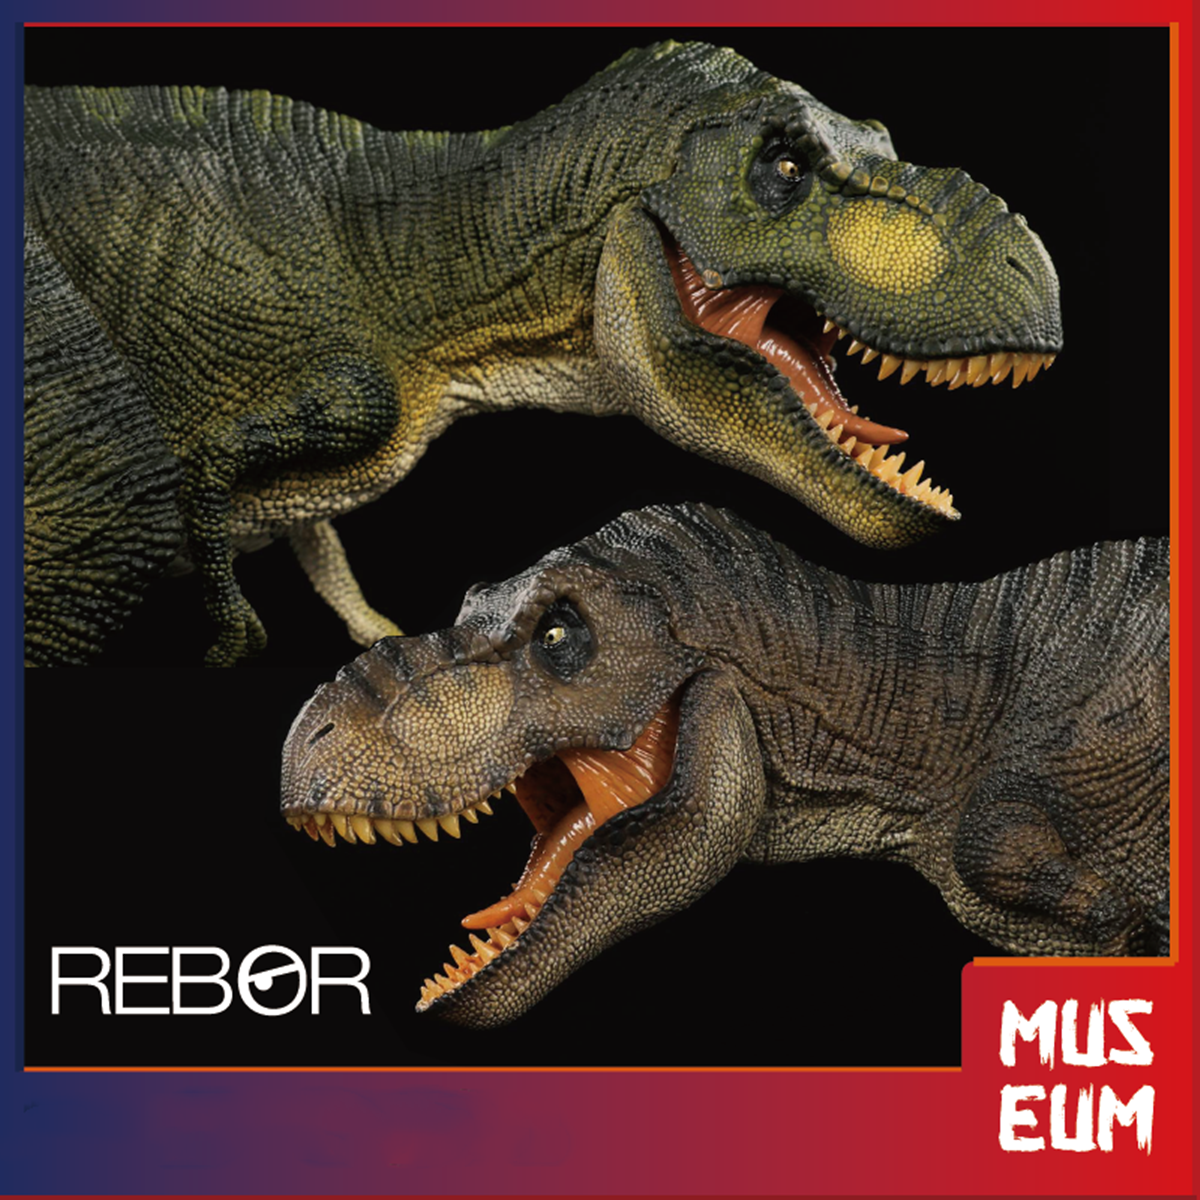 REBOR 1/35 Paleontology Tyrannosaurus Rex T-Rex Killer Queen Dinosaur Model Animal Decor Toy